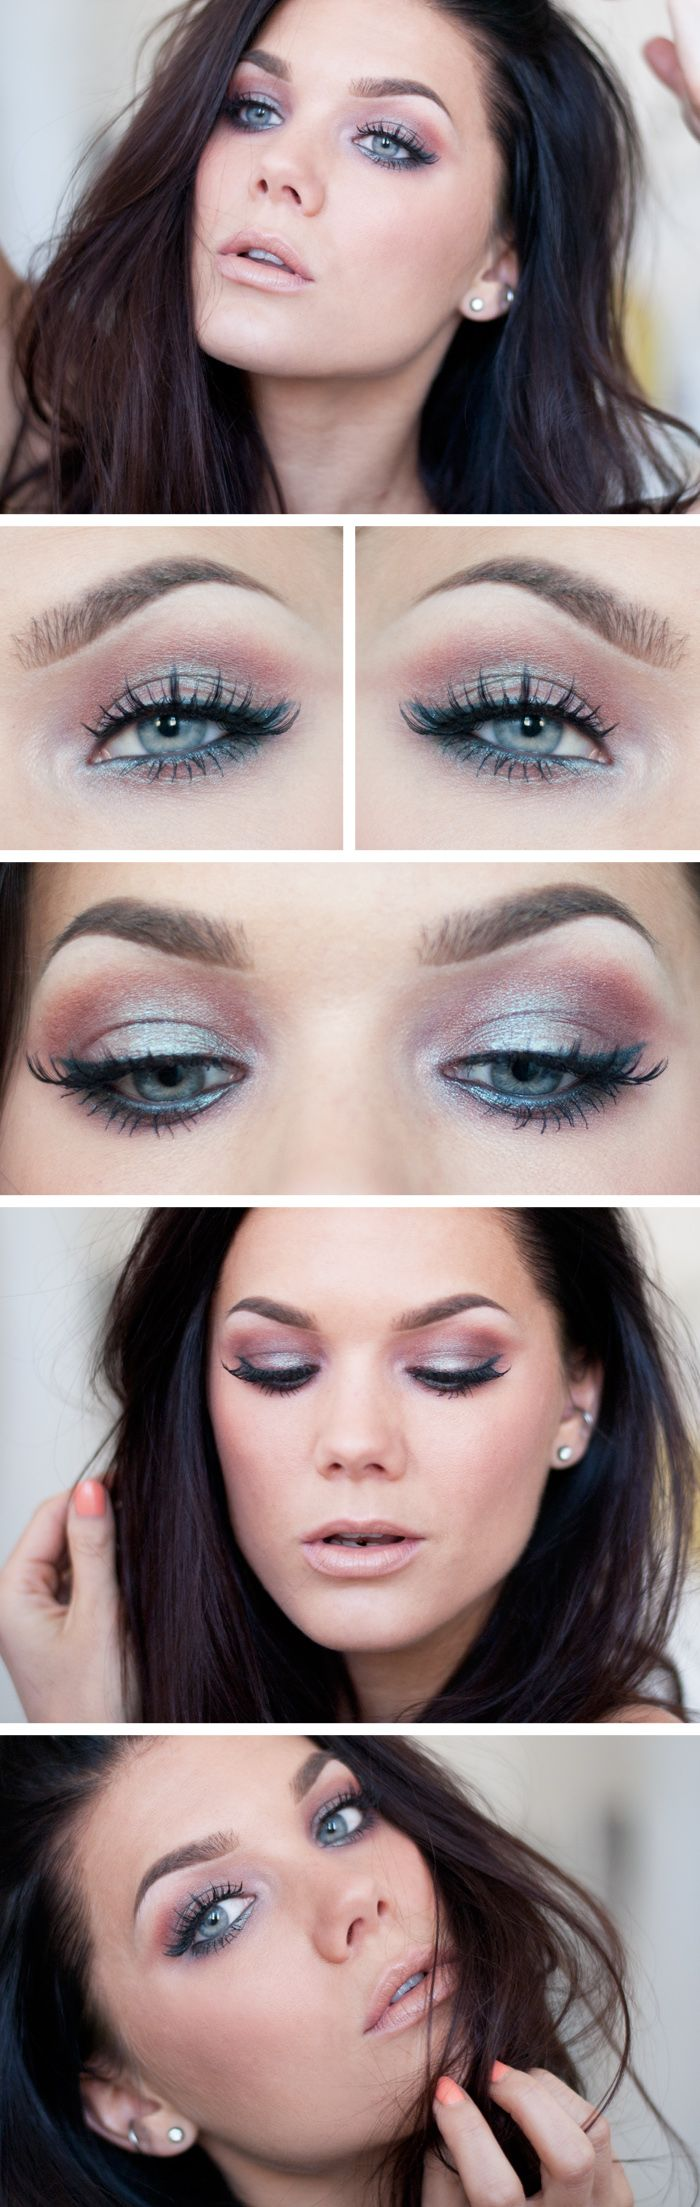 """Today's Look : """"INSOMNIA"""" -Linda Hallberg (I looove this look. The only thing on her eyes (besides primer, of course, is Makeup Geek's pigment in """"Insomnia"""" which is a chocolate brown duochrome pigment with teal/blue reflects.) 06/18/13"""